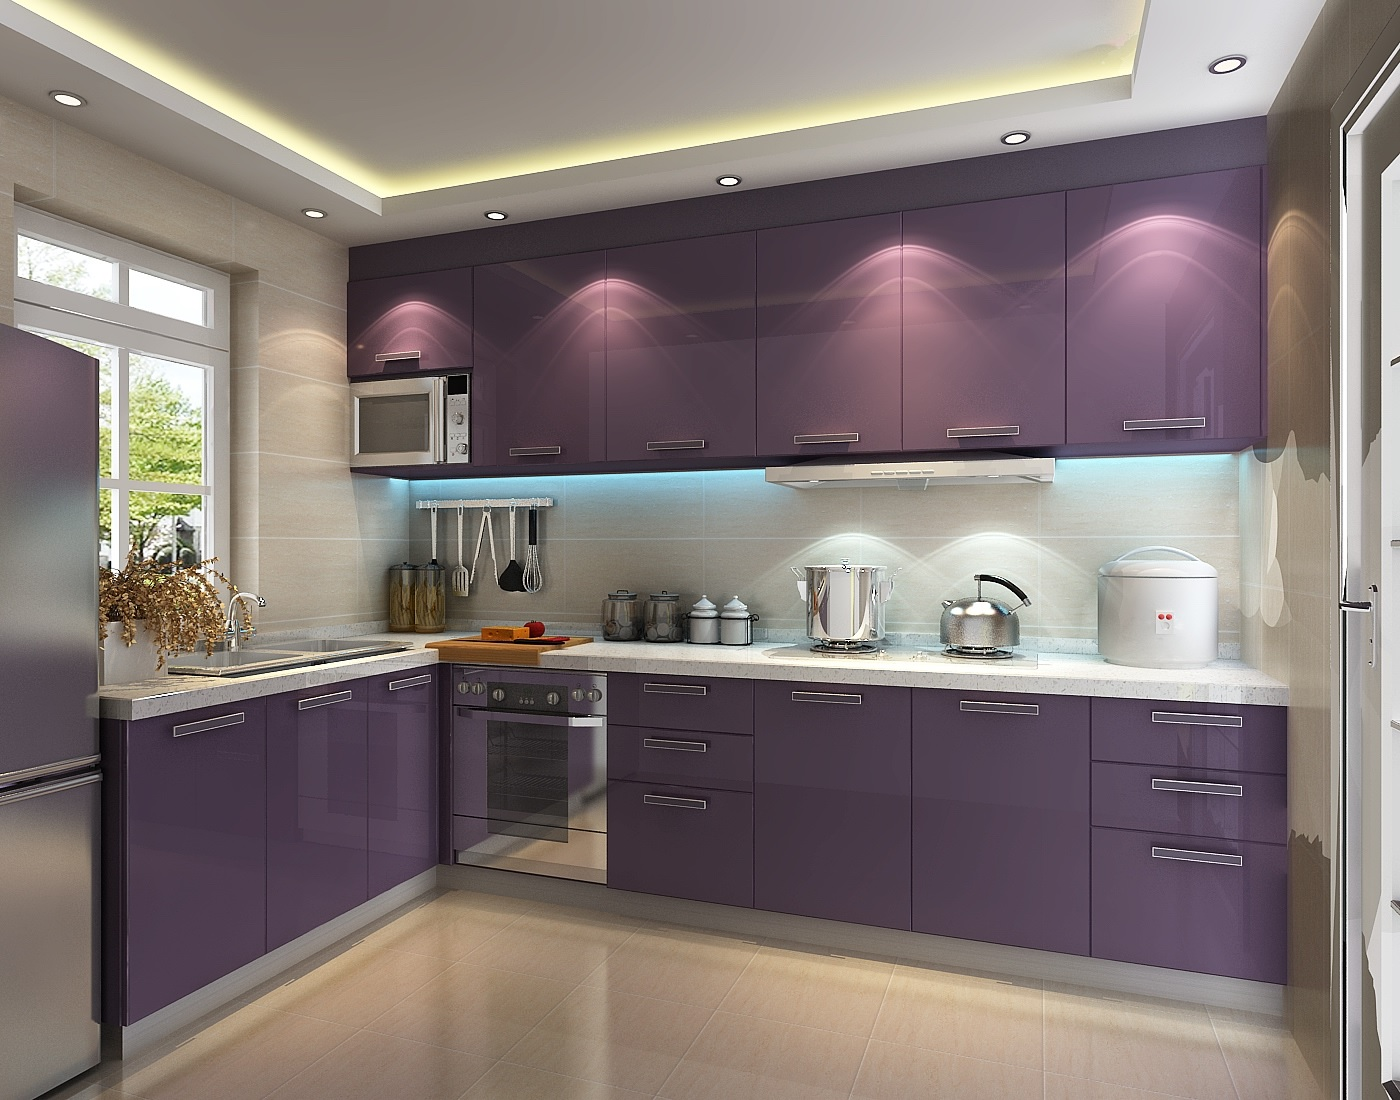 Purple kitchen cabinet image